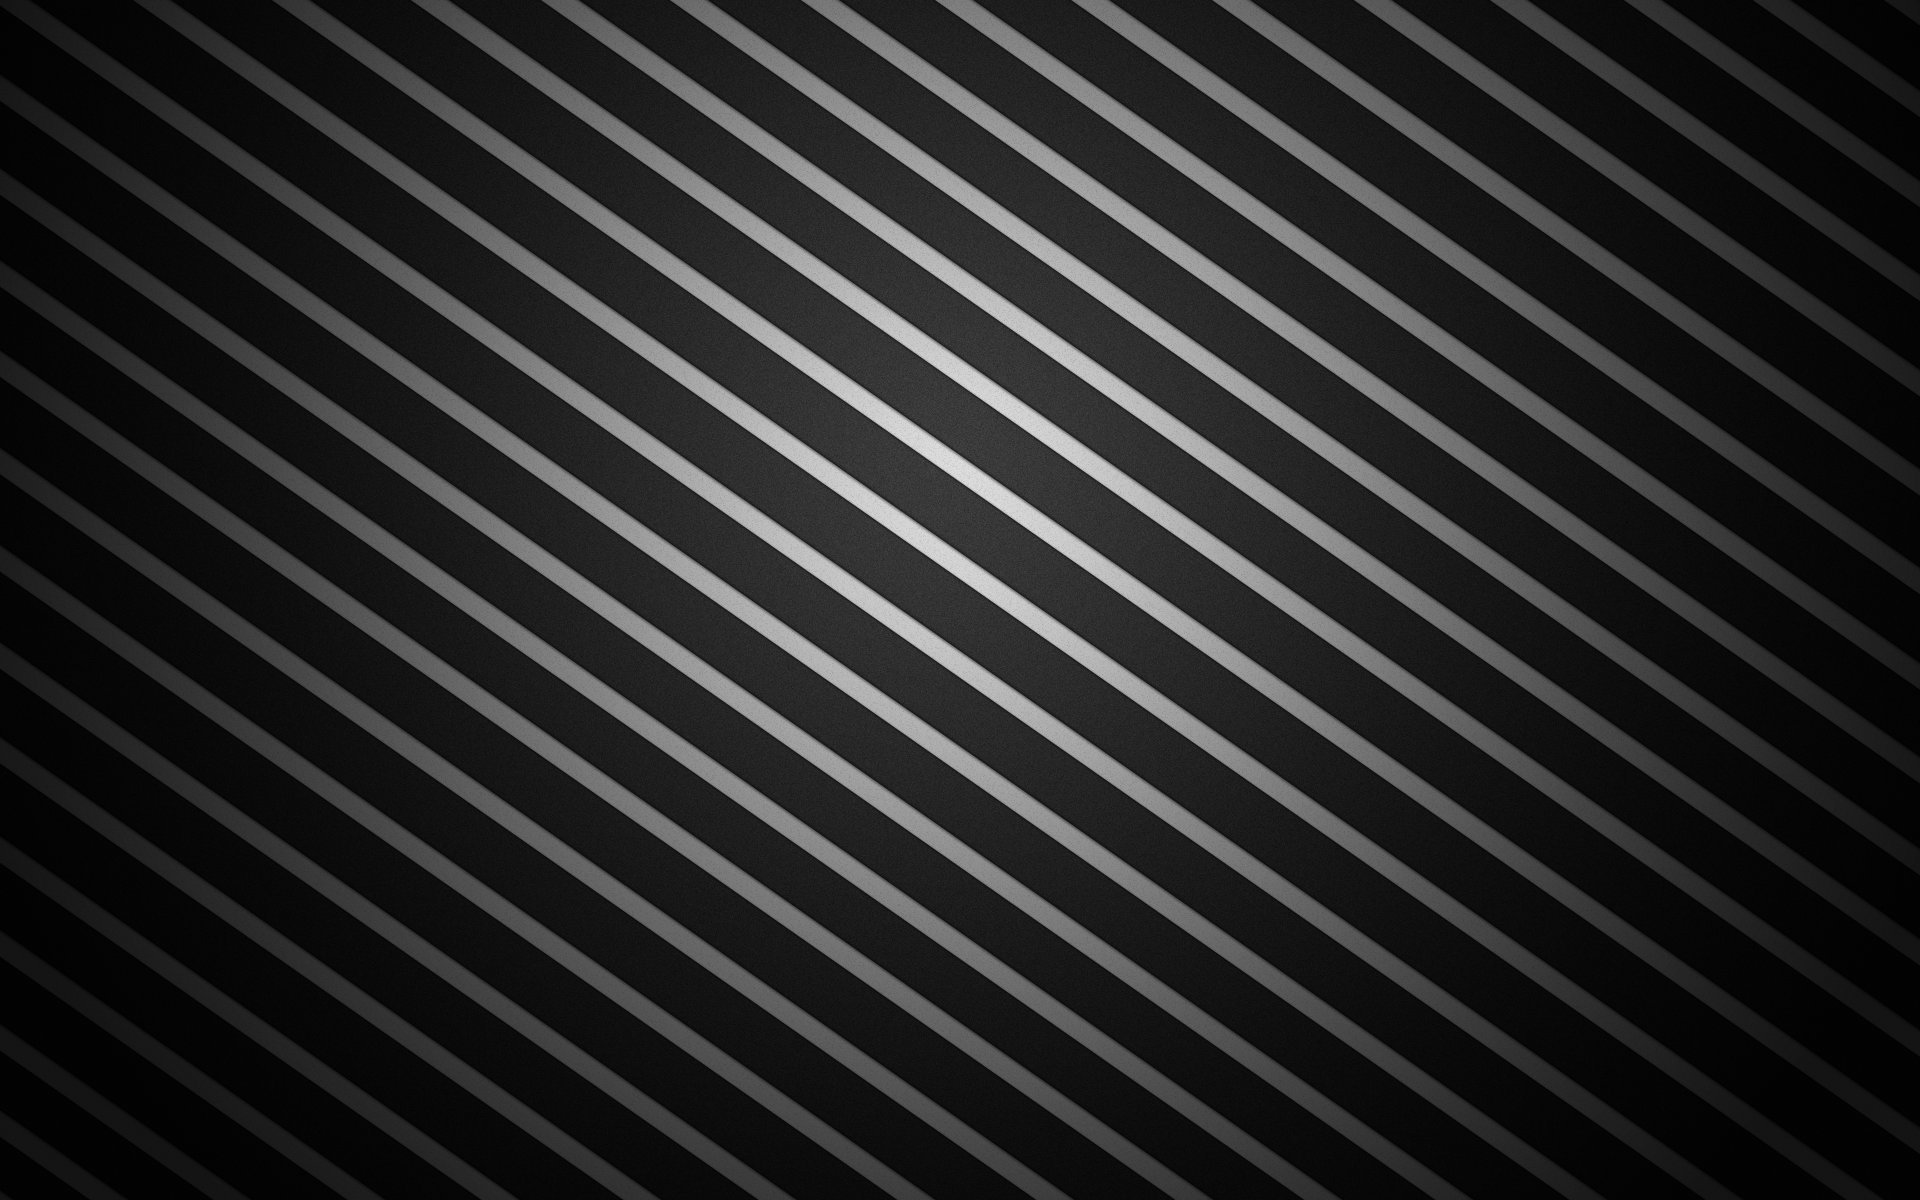 Free Stripe high quality wallpaper ID:137811 for hd 1920x1200 desktop